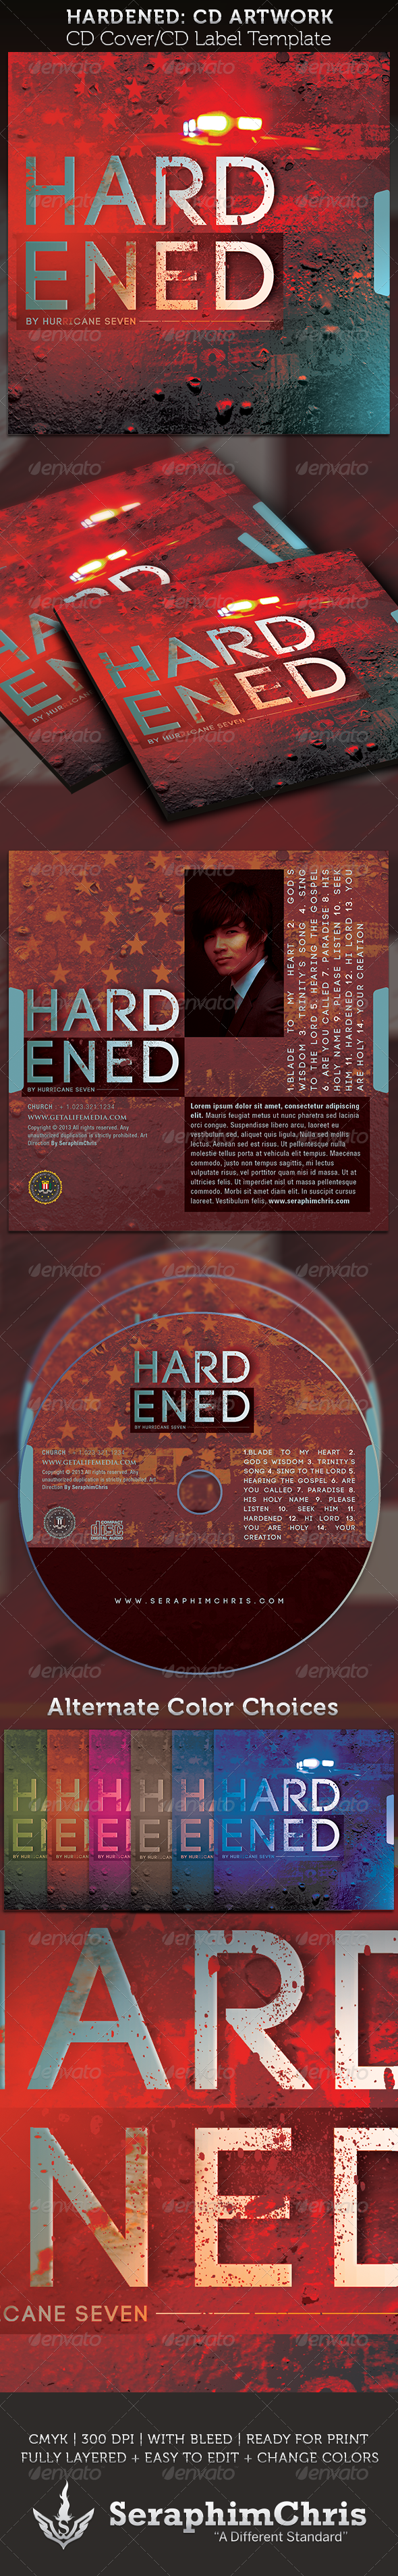 Hardened CD Cover Artwork Template - CD & DVD Artwork Print Templates